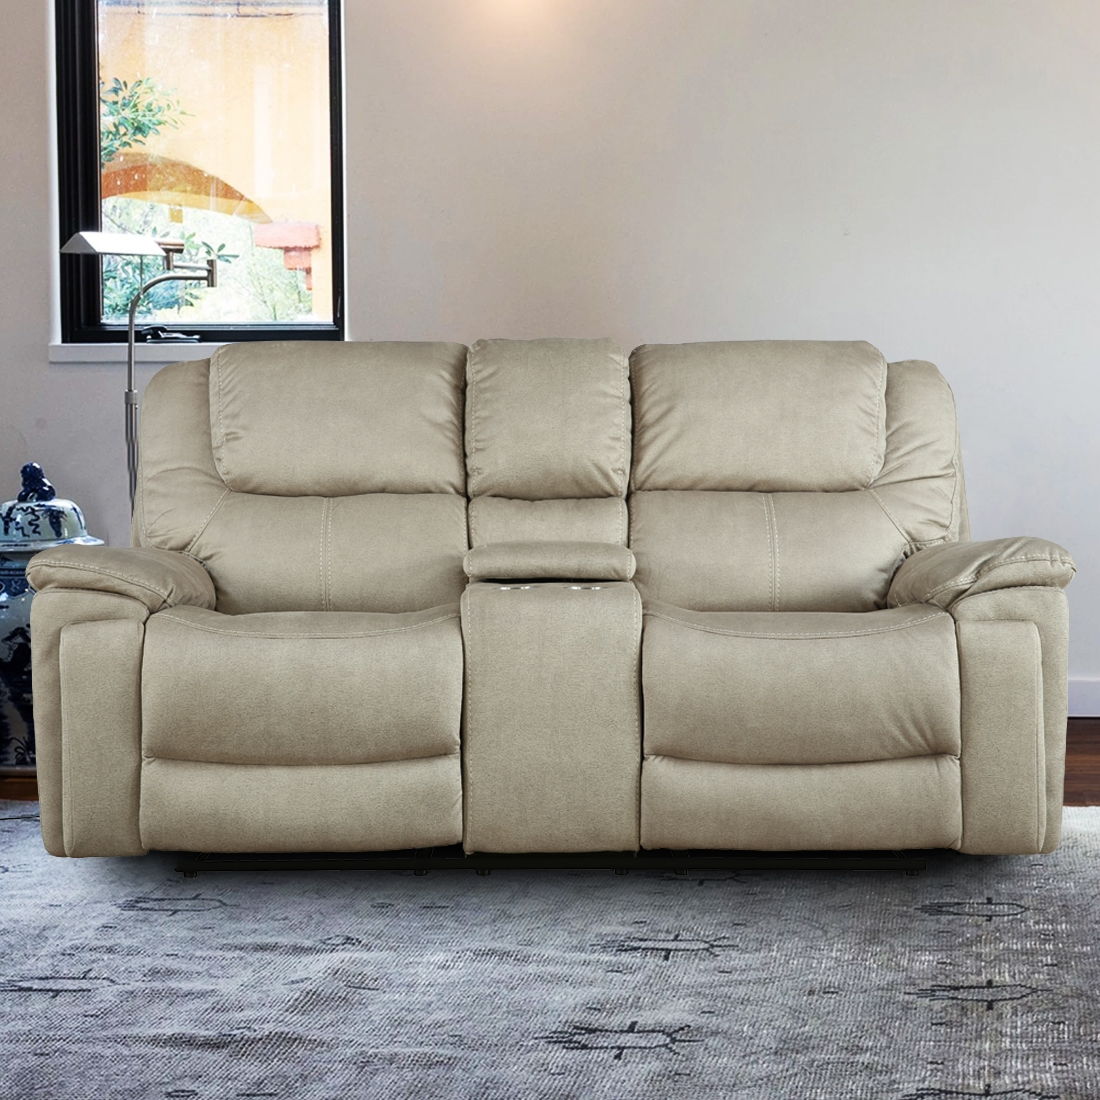 Argos Fabric Two Seater Electric Recliner With Triple Motion in Camel Colour by HomeTown